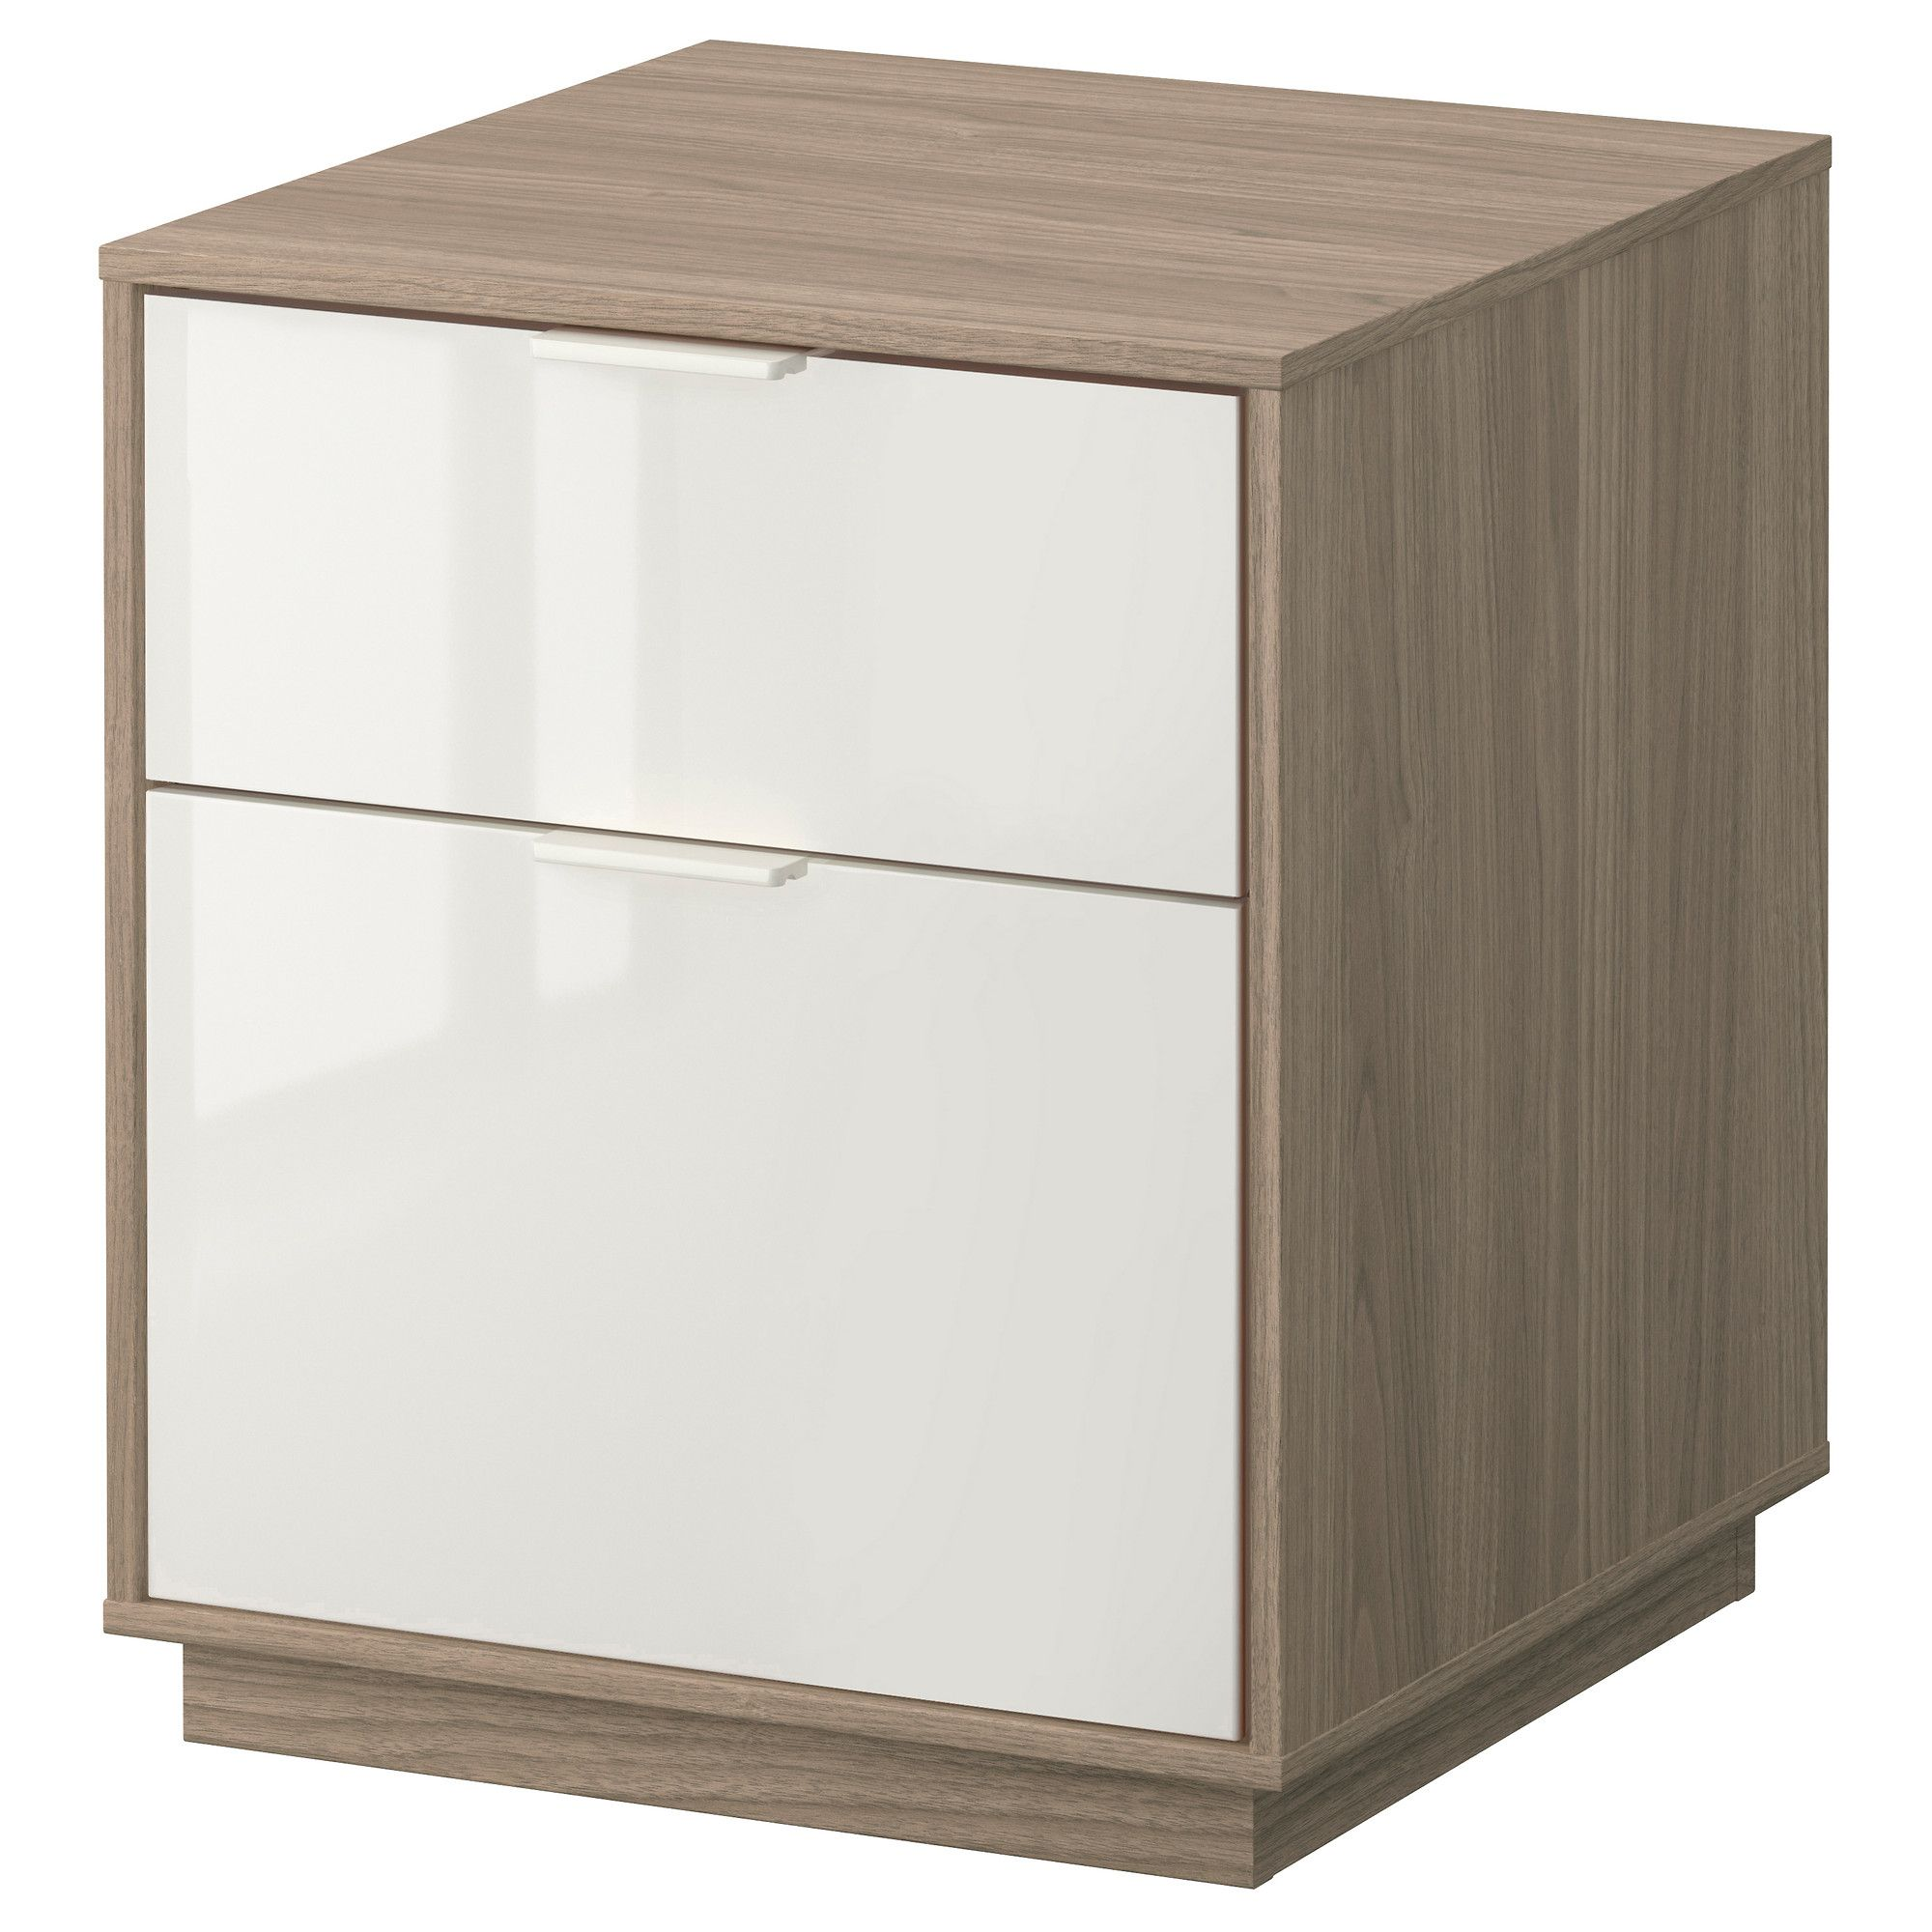 NYVOLL Chest with 2 drawers light gray/white IKEA